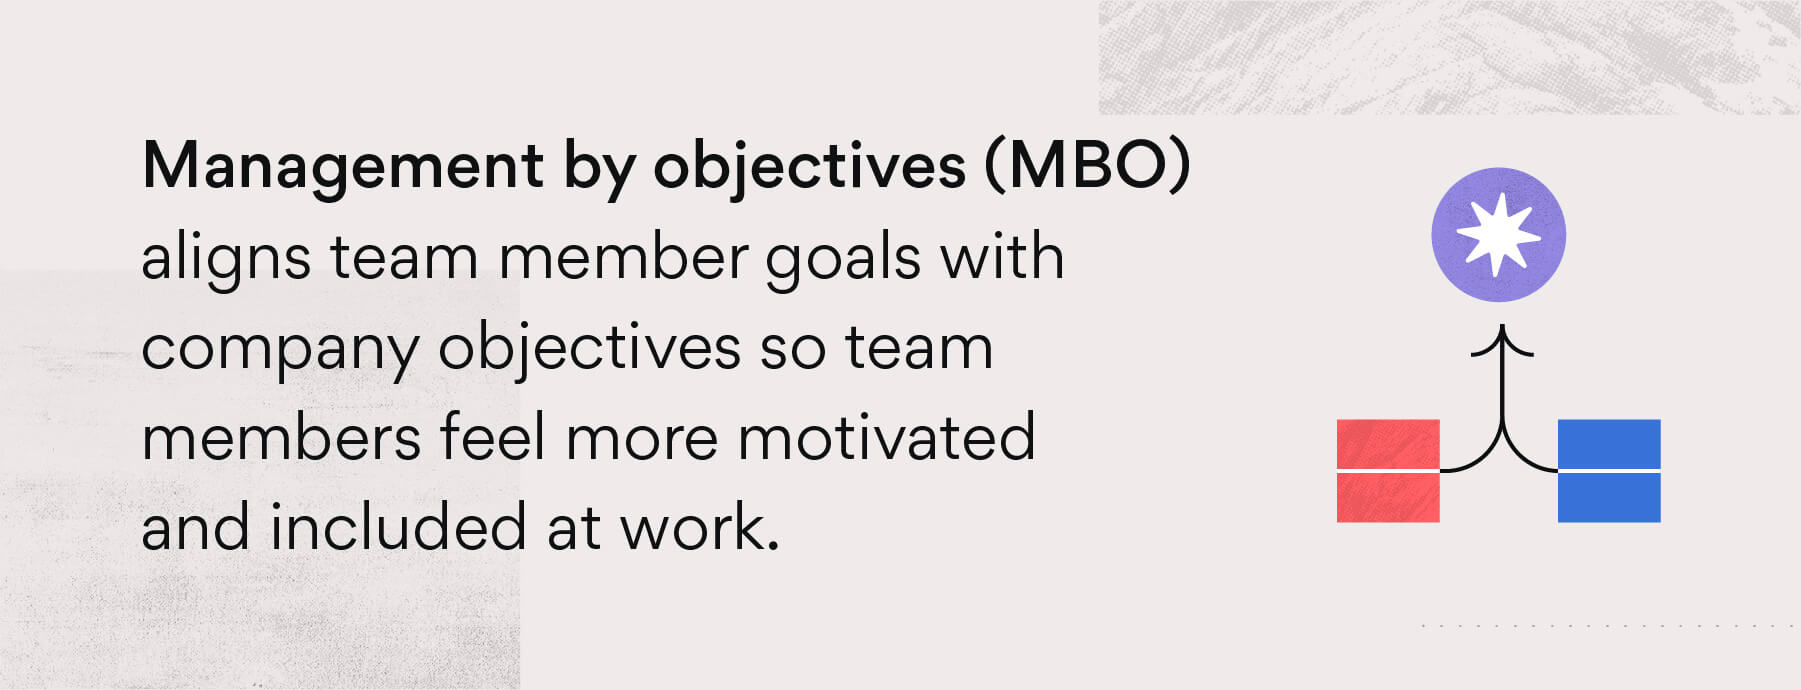 What is management by objectives?